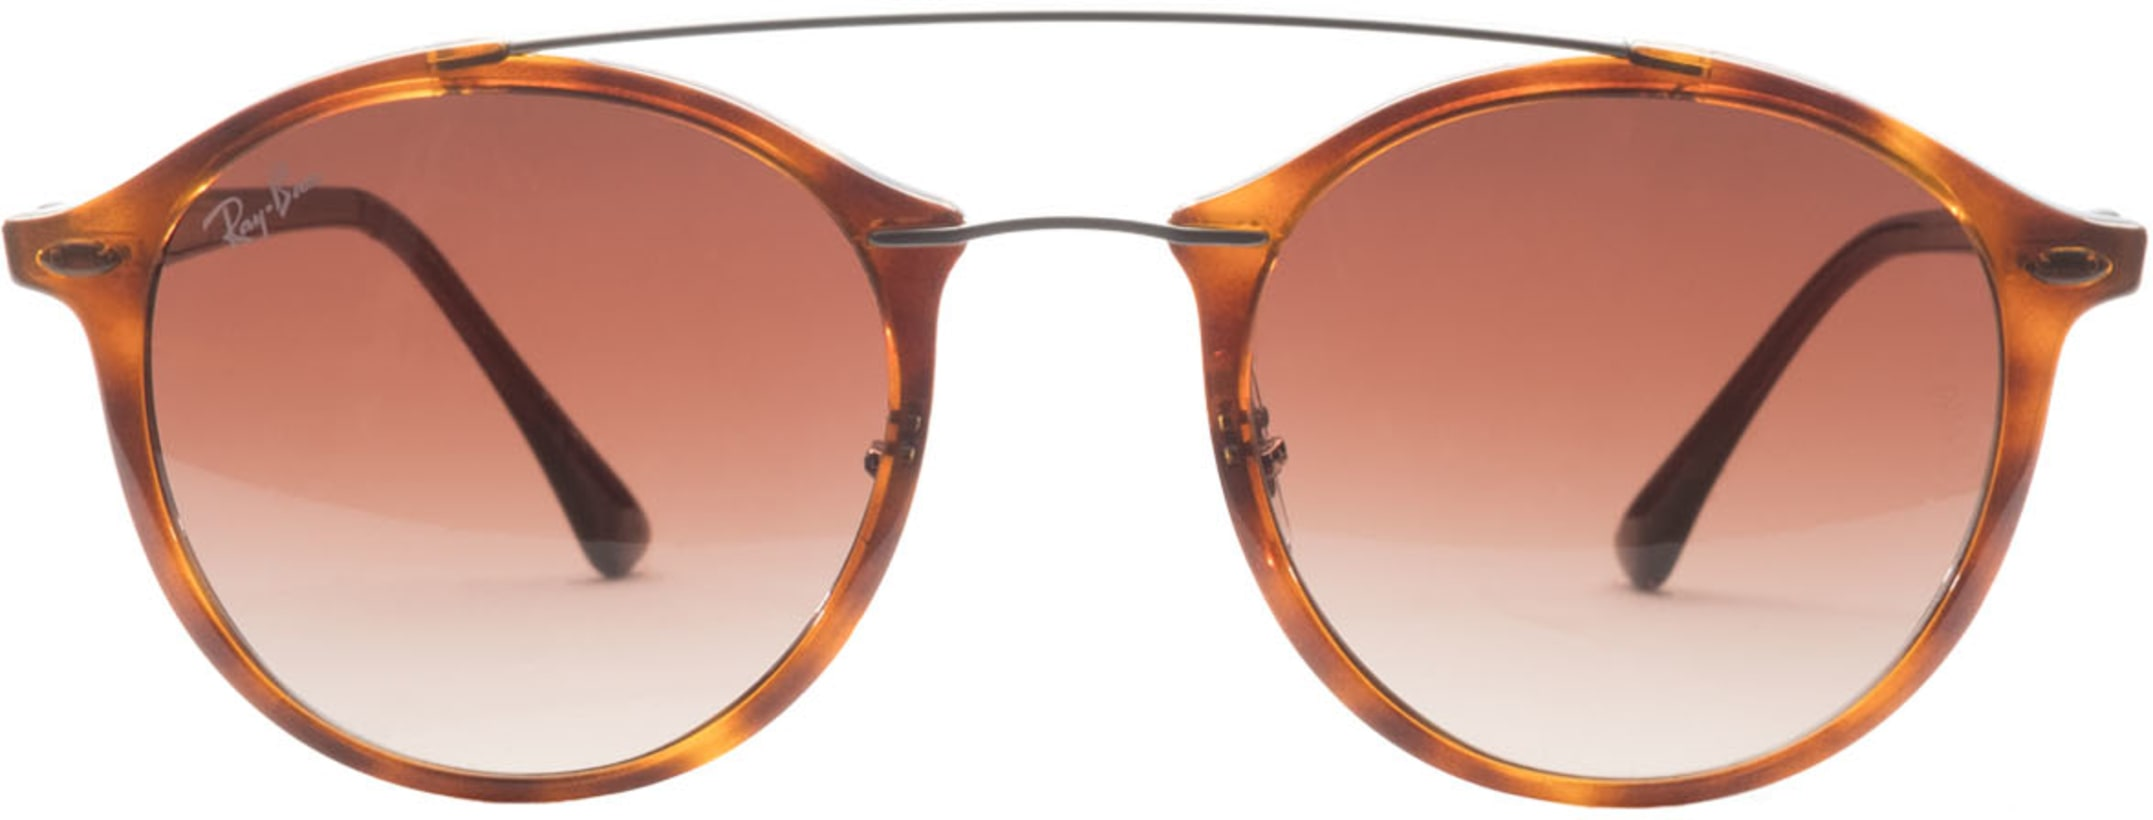 6ad3eb1b961b1 Ray-Ban  Round Light Ray Nylon Sunglasses - Tortoise Brown Brown ...